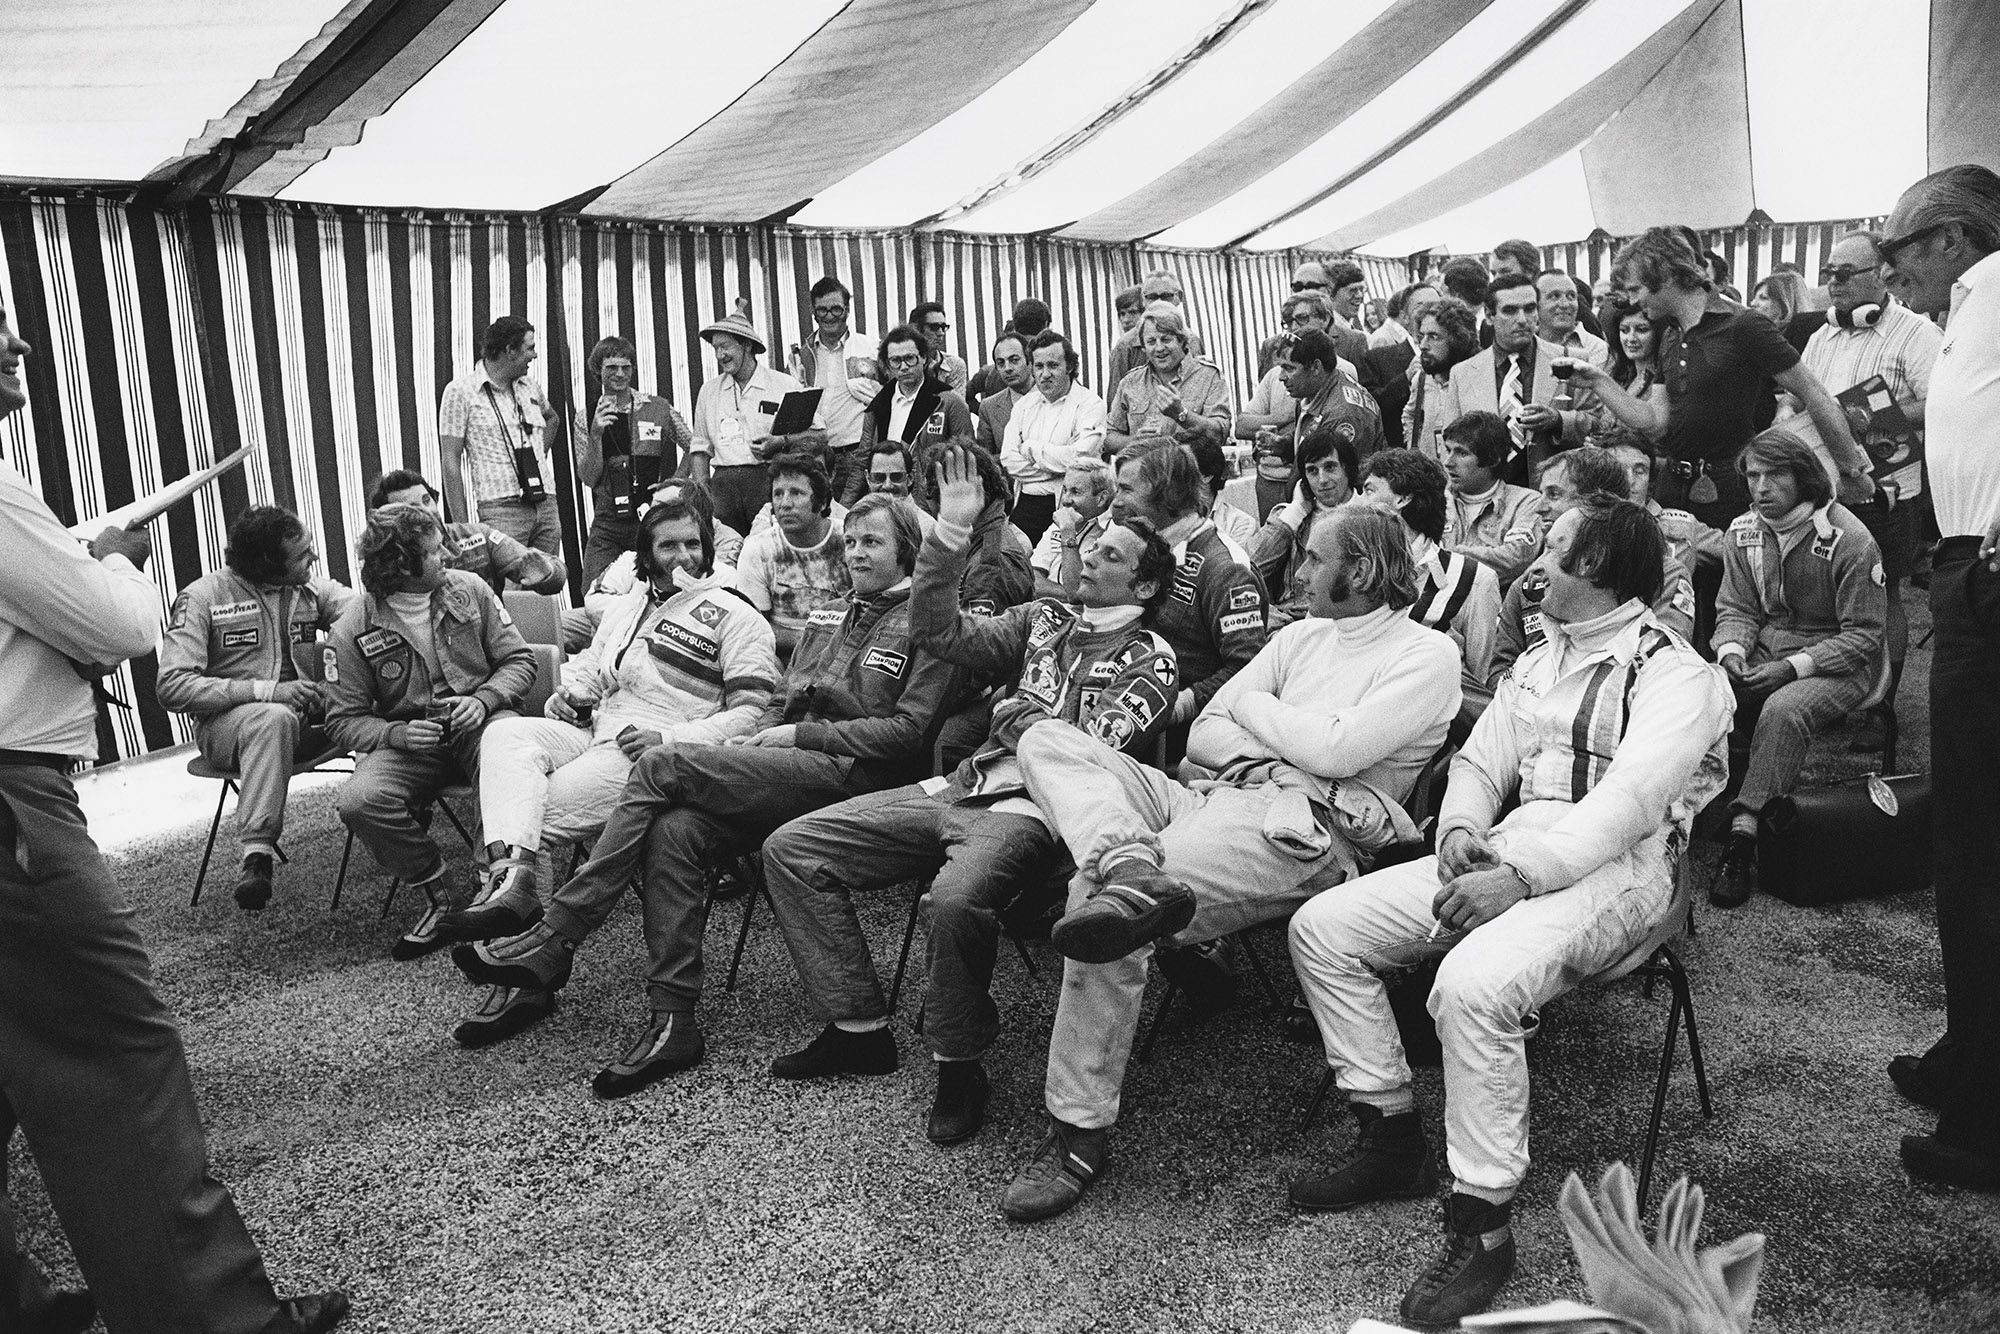 Niki Lauda raises his hand in a driver's briefing at the 1976 South African Grand Prix